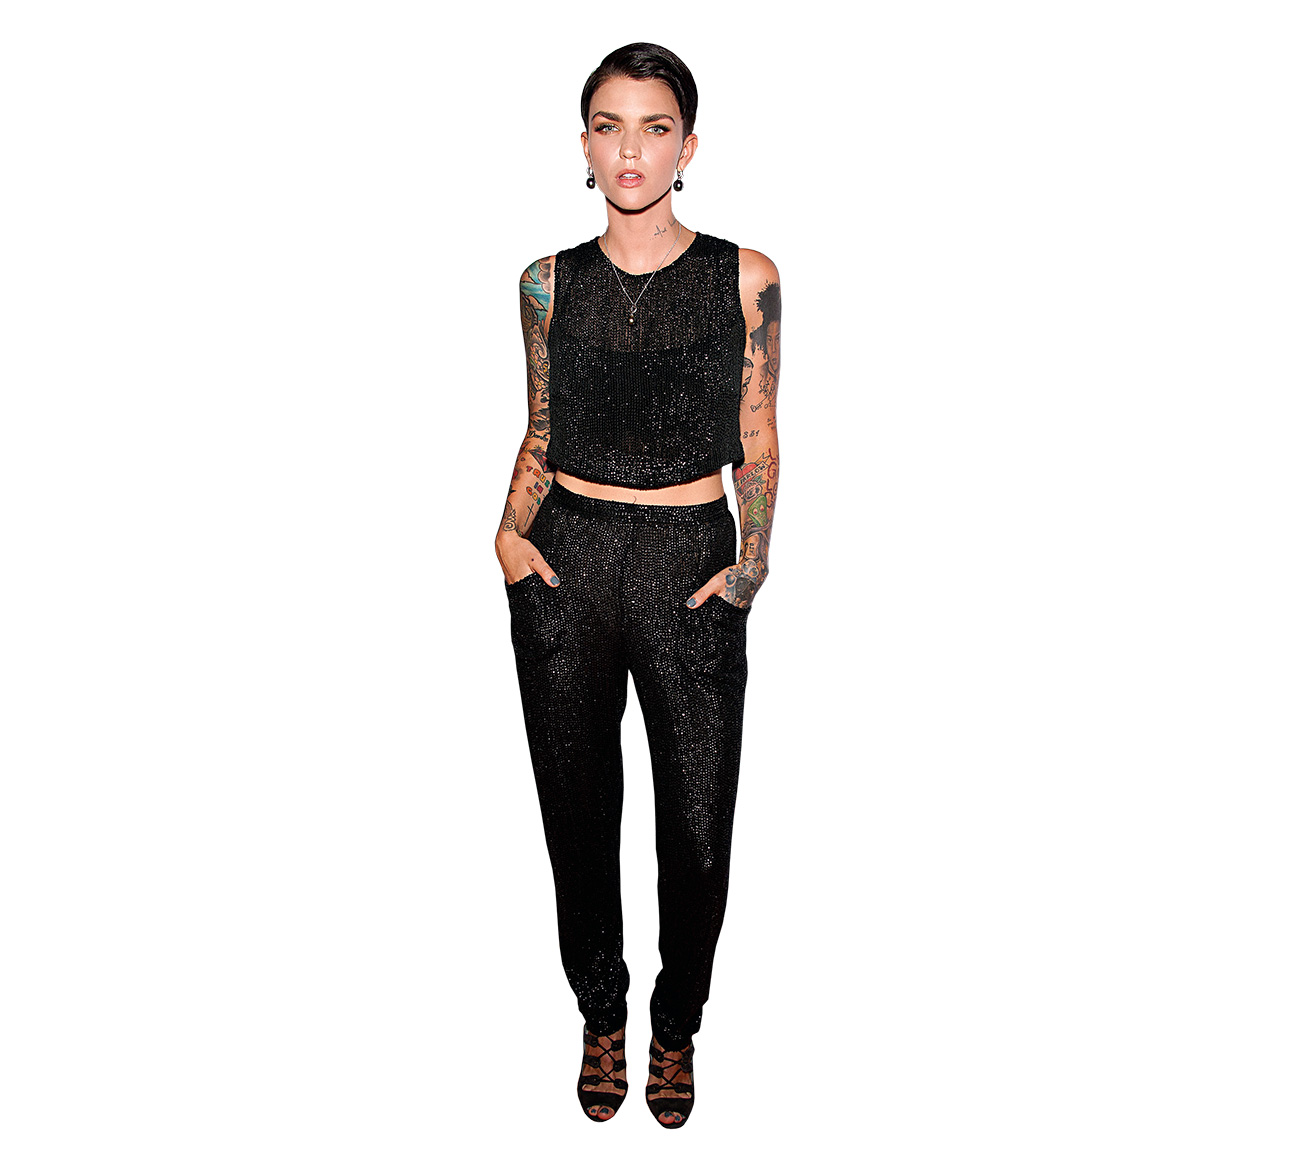 Who is Ruby Rose?